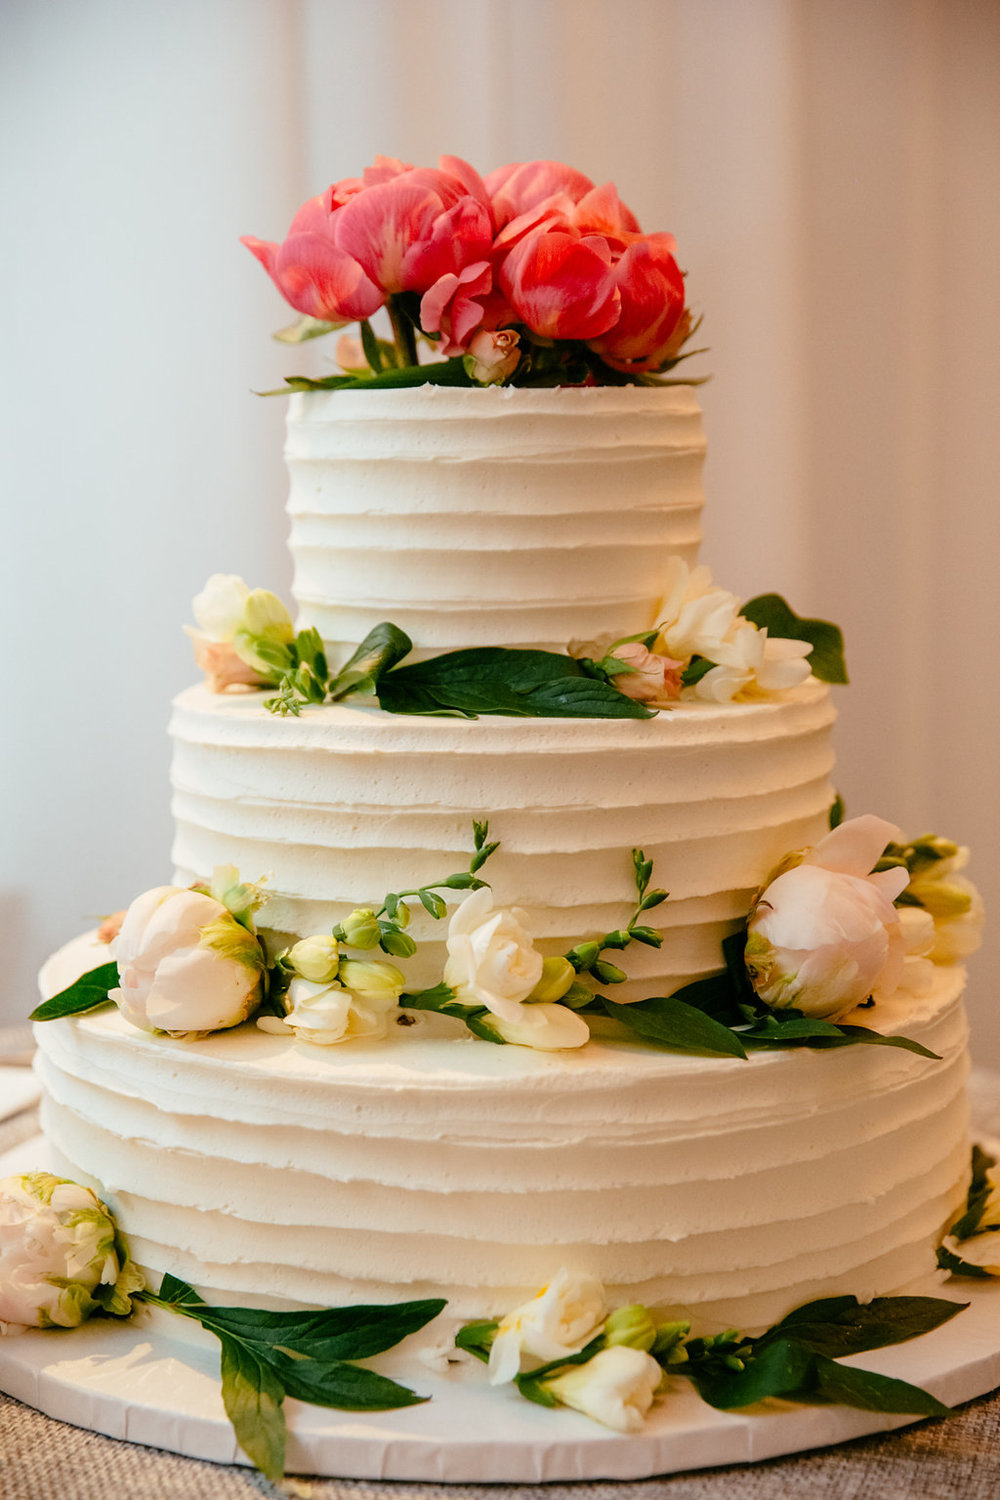 Tall & Small Events NYC, E+A - Pregnant bride surprise wedding cake gender reveal. Modern, non-denominational, garden wedding at Wainwright House, Rye NY. Photo: Tory Williams Photography